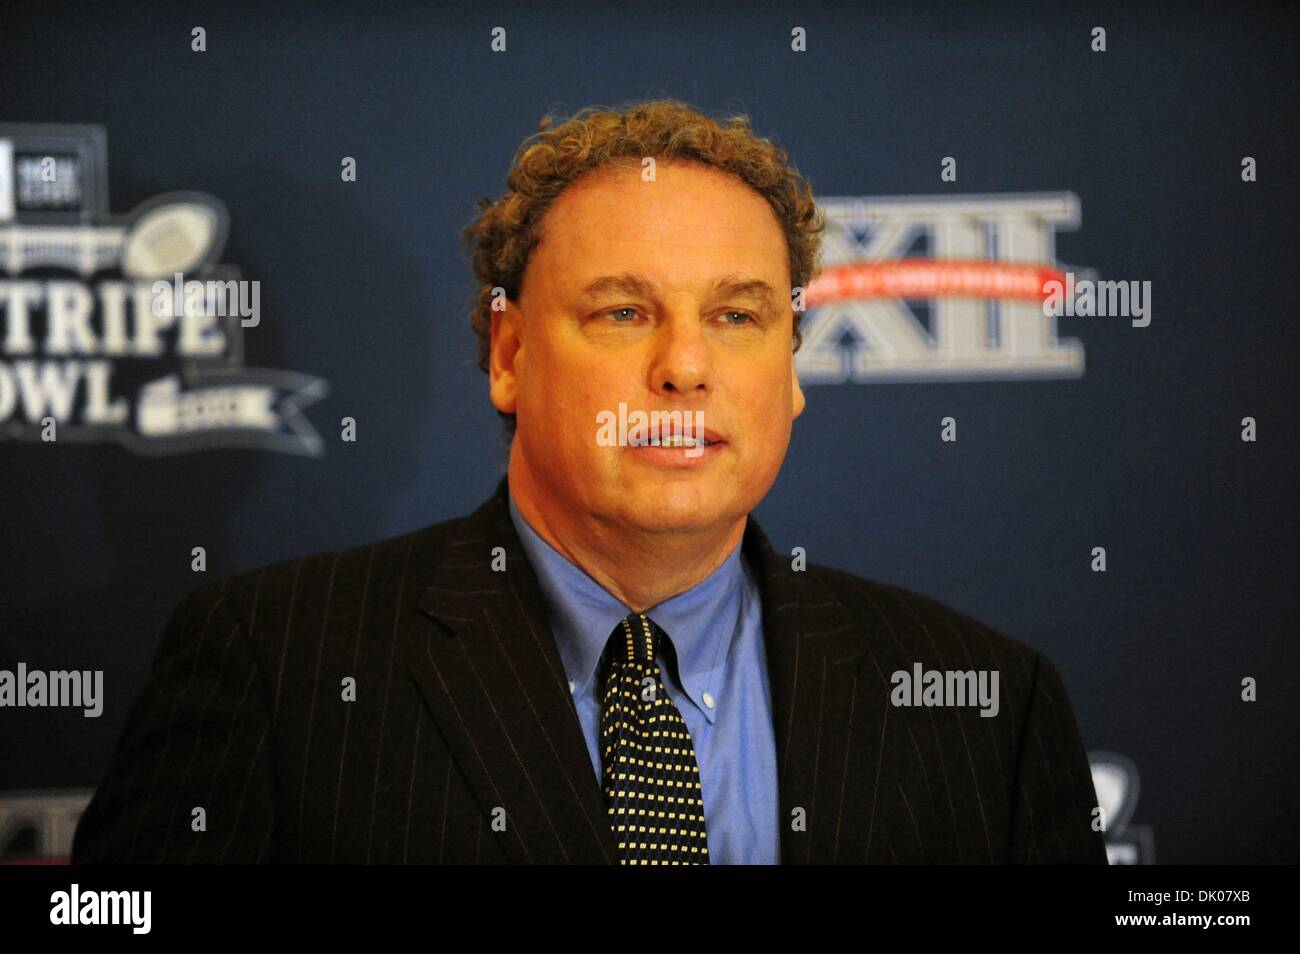 Dec. 22, 2010 - Manhattan, New York, U.S. - New York Yankees President RANDY LEVINE speaks as The New Era Pinstripe Bowl announces that it will donate over 6,000 tickets to New York City - based charitable and community groups for the inaugural bowl game to be played on December 30, 2010 at Yankee Stadium. (Credit Image: © Bryan Smith/ZUMAPRESS.com) - Stock Image